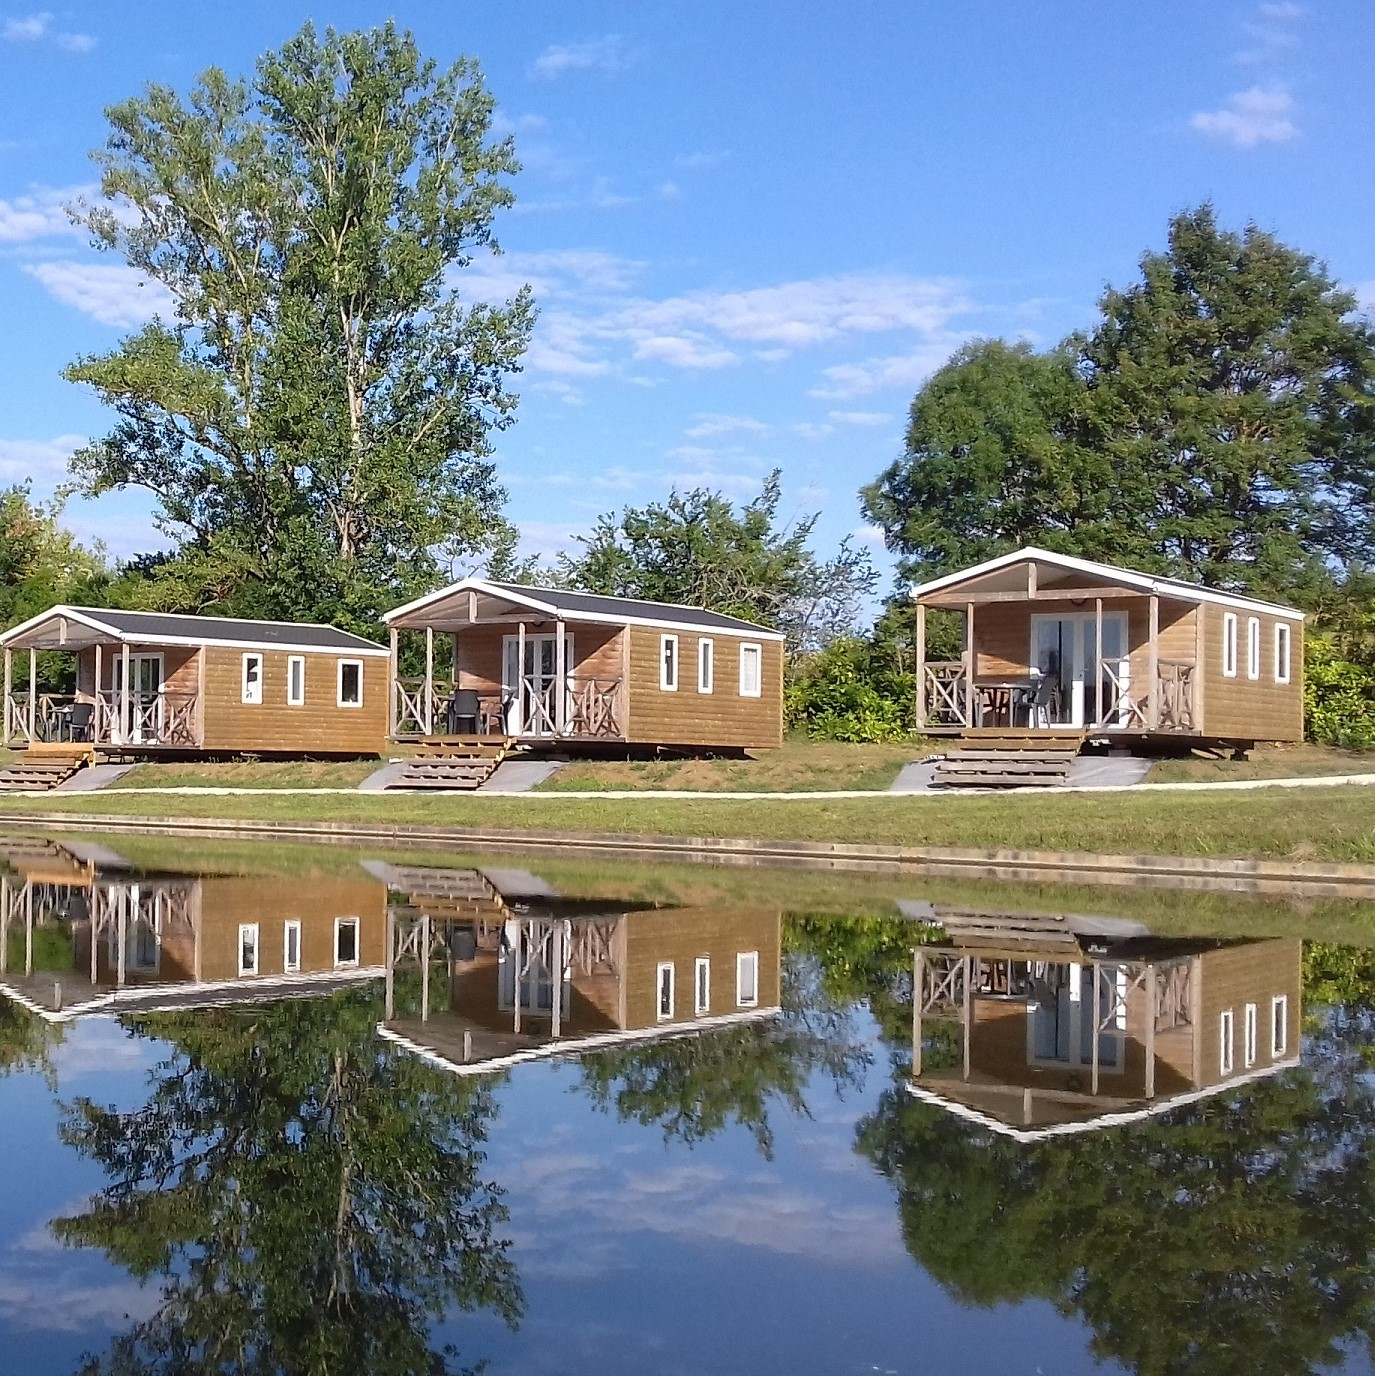 Camping Sites et Paysages Saint Louis Lamontjoie